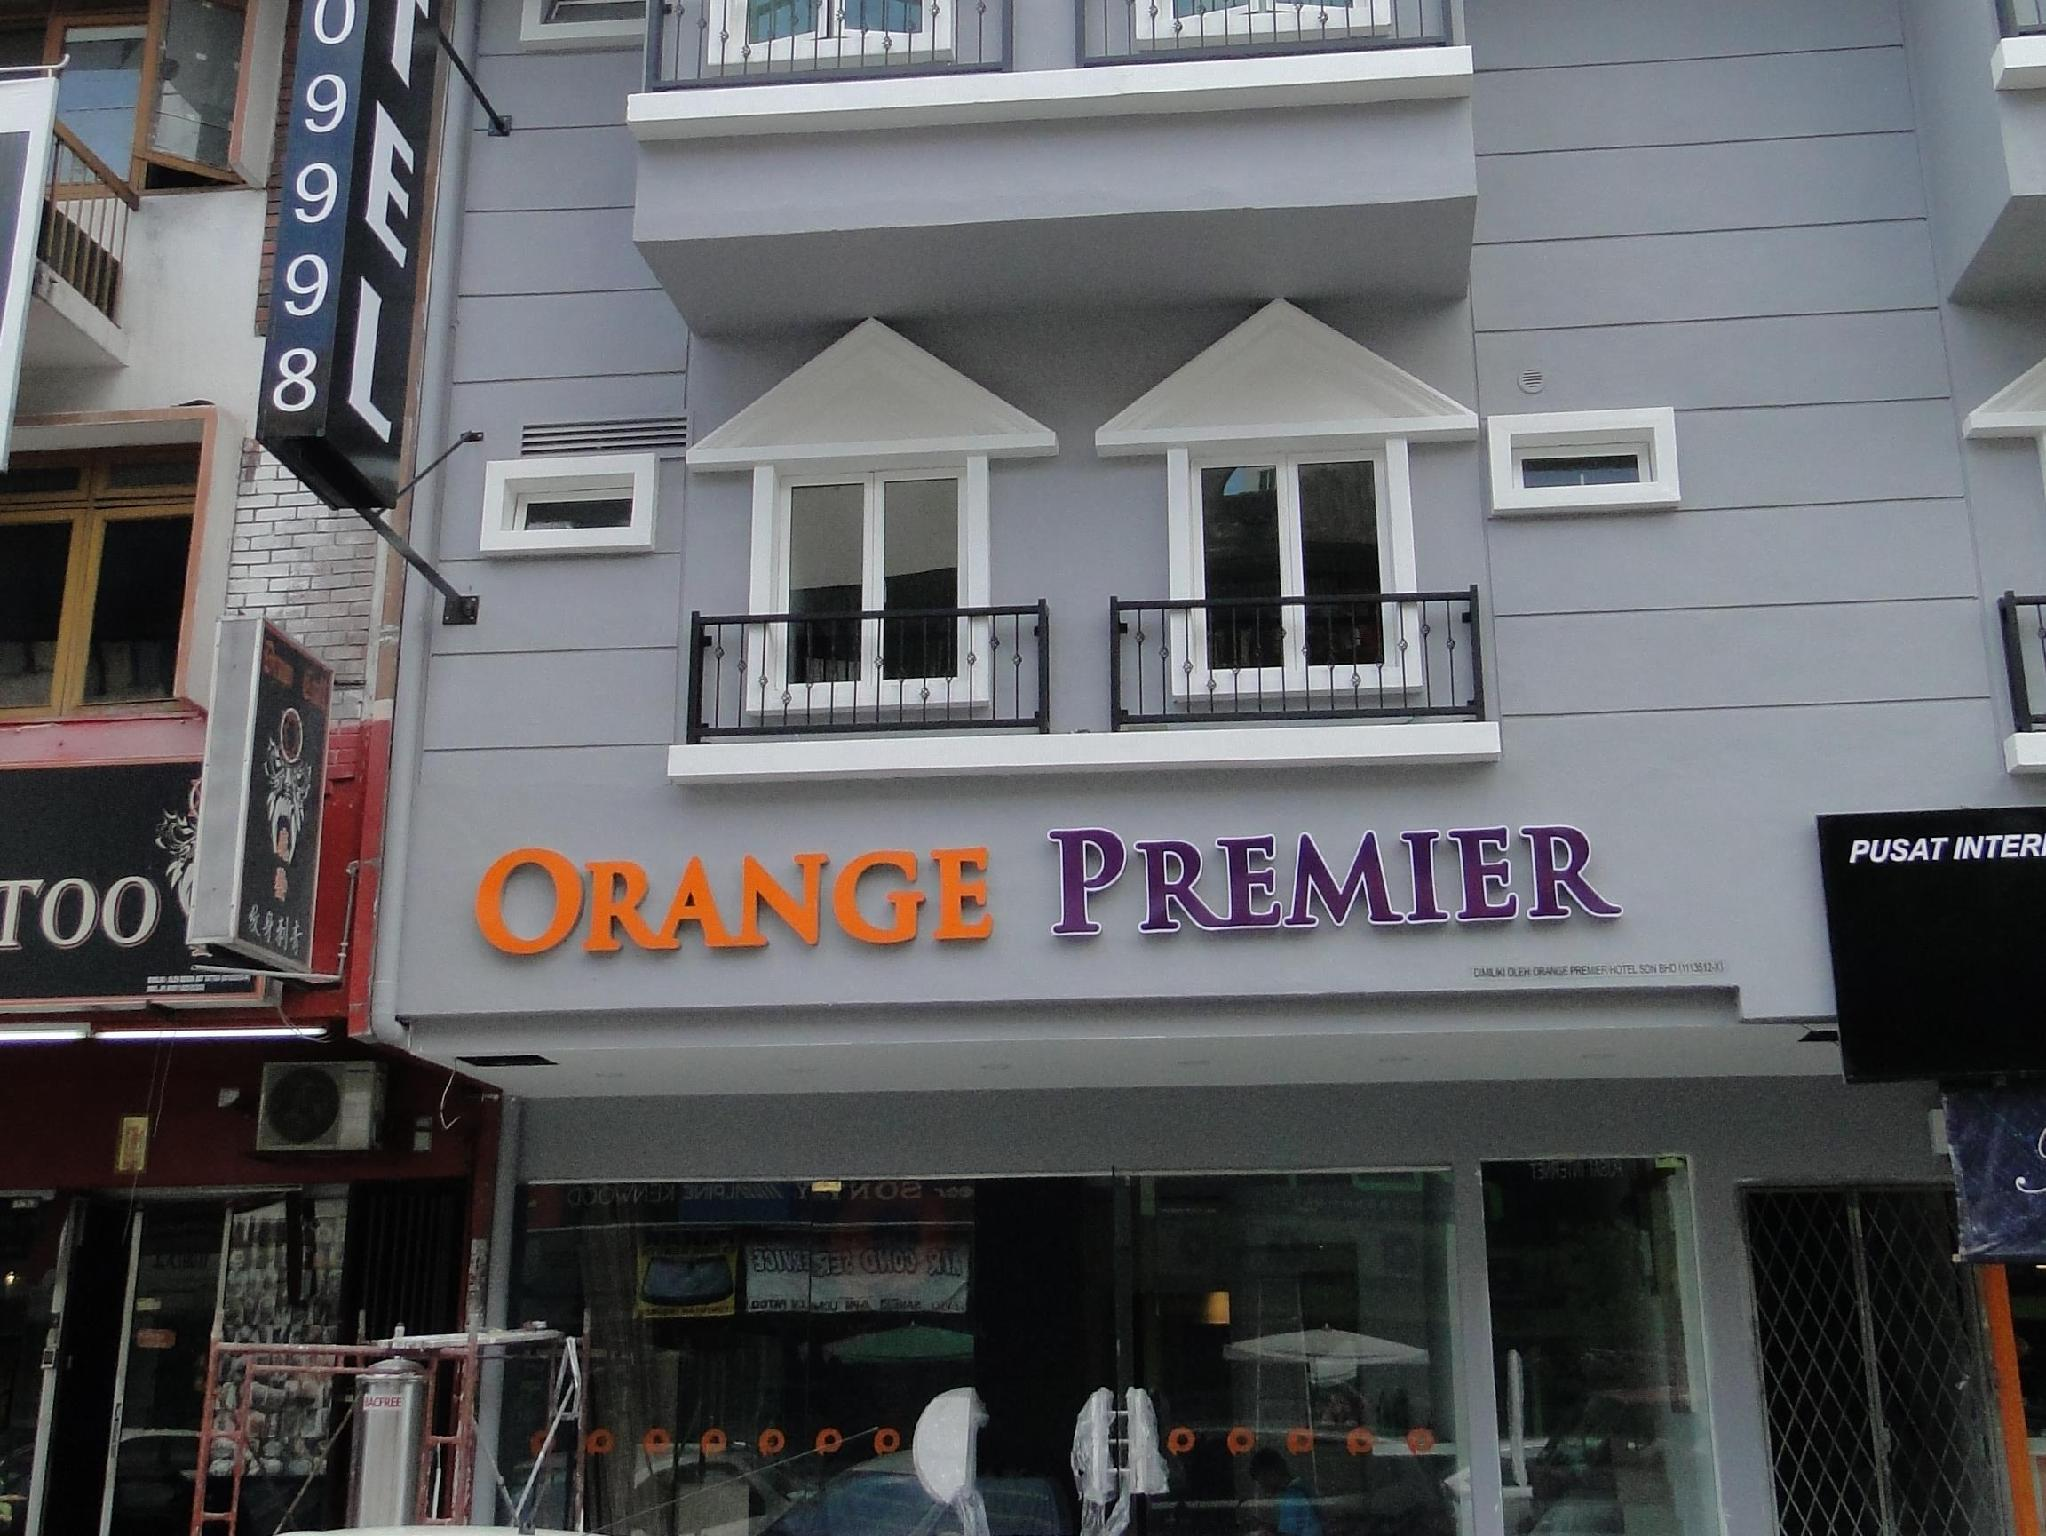 Hotels Taman: description, price 79